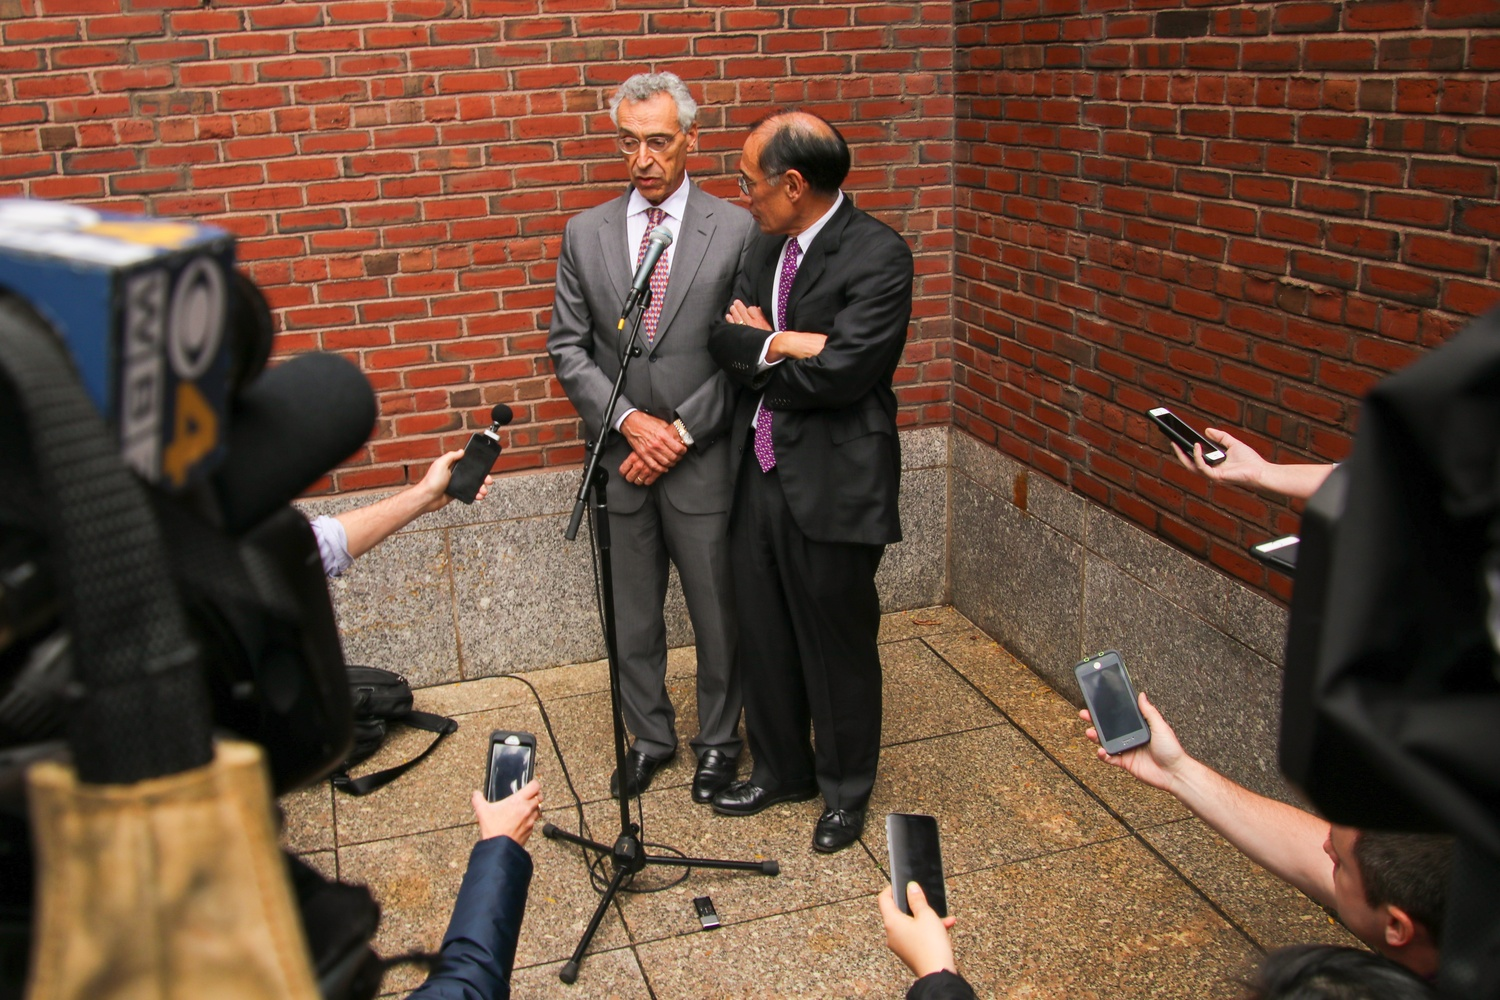 Seth P. Waxman '73 and William F. Lee '72 speak to members of the press outside John Joseph Moakley United States Courthouse immediately following the conclusion of the three-week-long Harvard admissions trial.